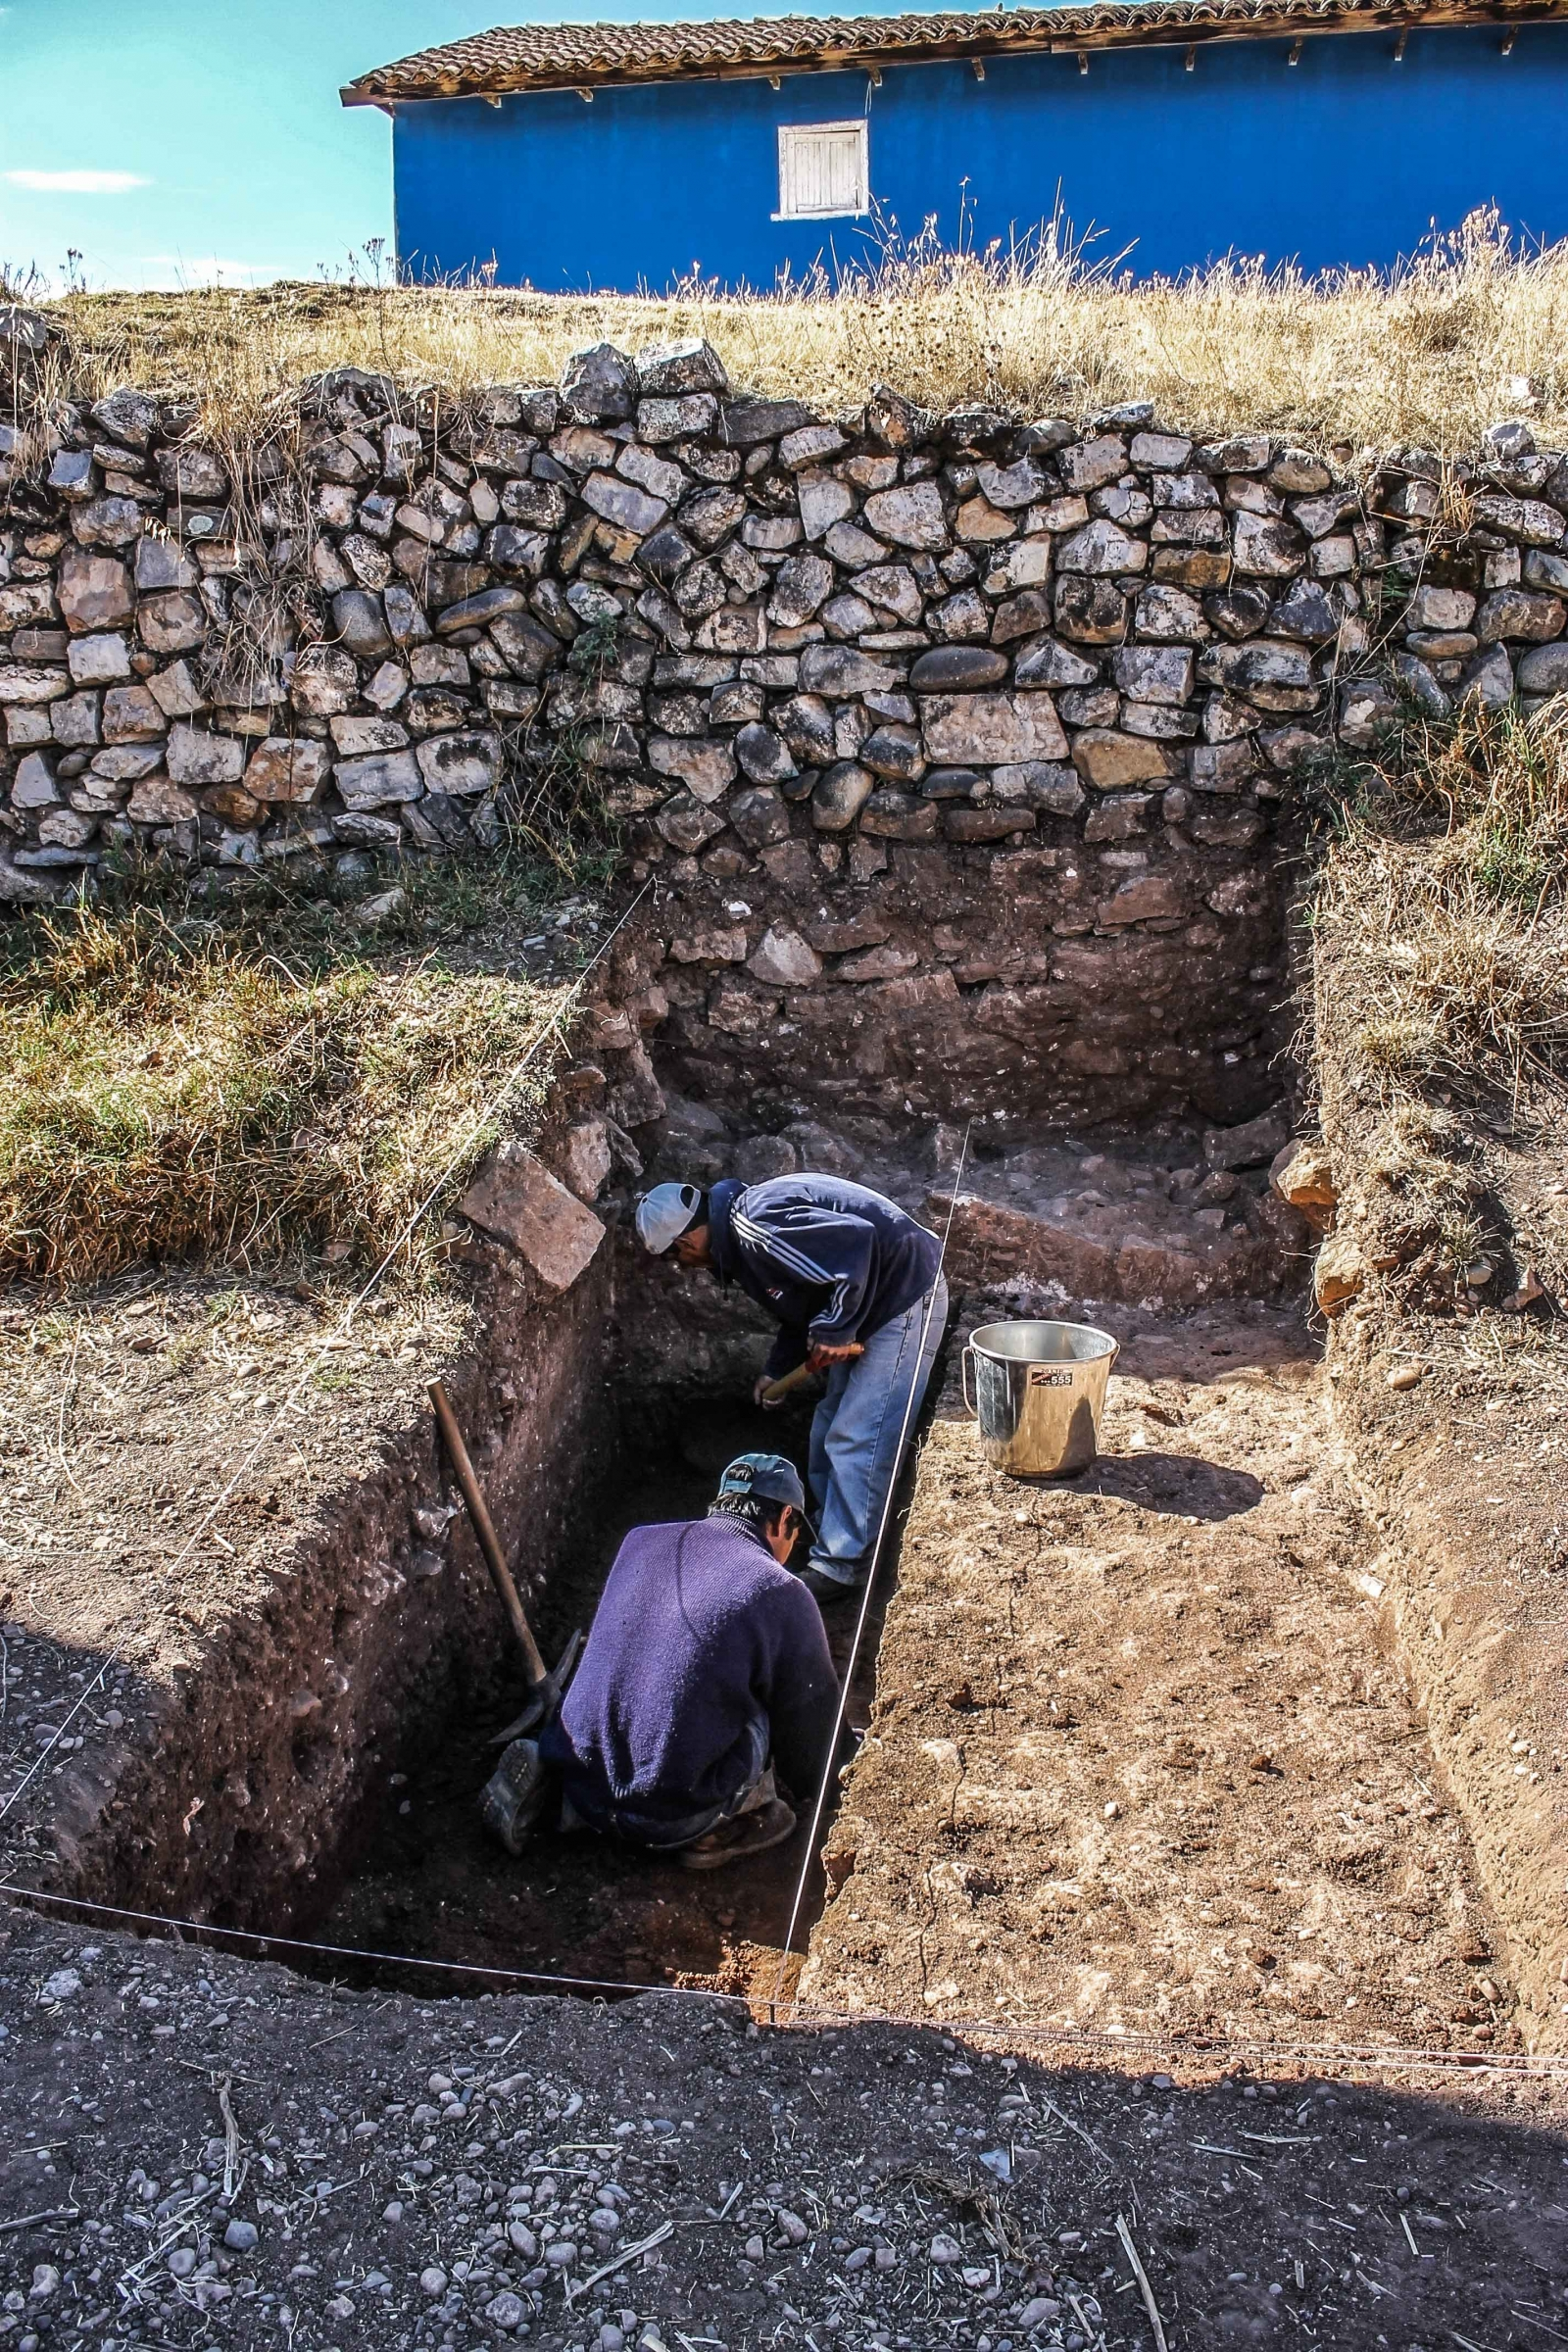 Important Inca Remains of Hatun Xauxa Ceremonial Site Discovered in Central Peru